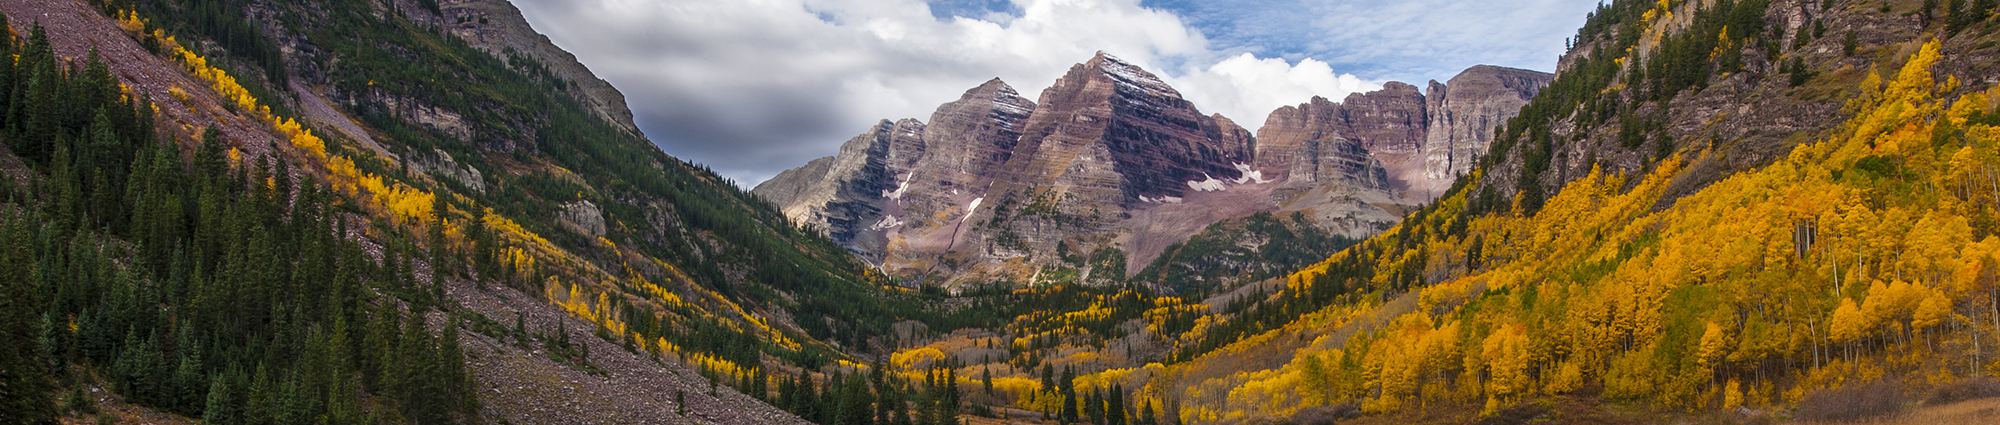 A magnificent view of Maroon Bells in Colorado – two peaks in the Elk Mountains, each over 14,000' feet high.  The photo shows the peaks and their crystal-clear reflection in Maroon Lake below.  Golden Aspens line the lake and are also reflected, as are several friendly clouds in the sky above.